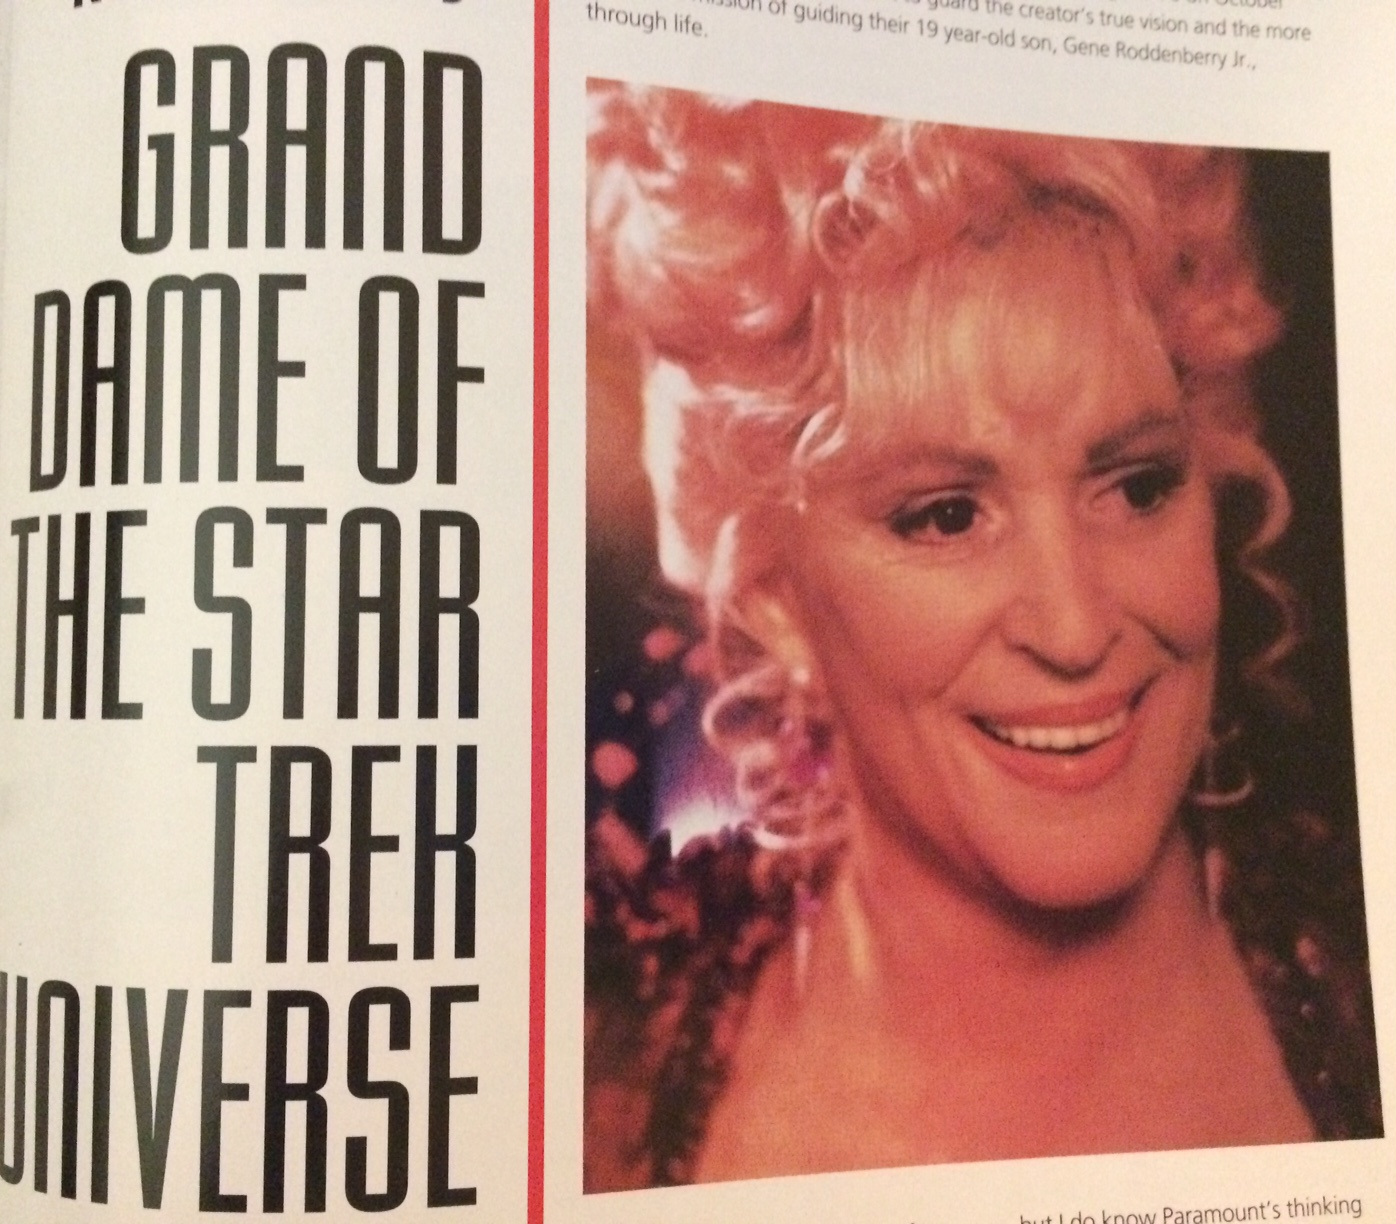 """Photo of Majel as Lwaxana Troi on DS9 with headline """"Grand Dame of the Star Trek Universe"""""""